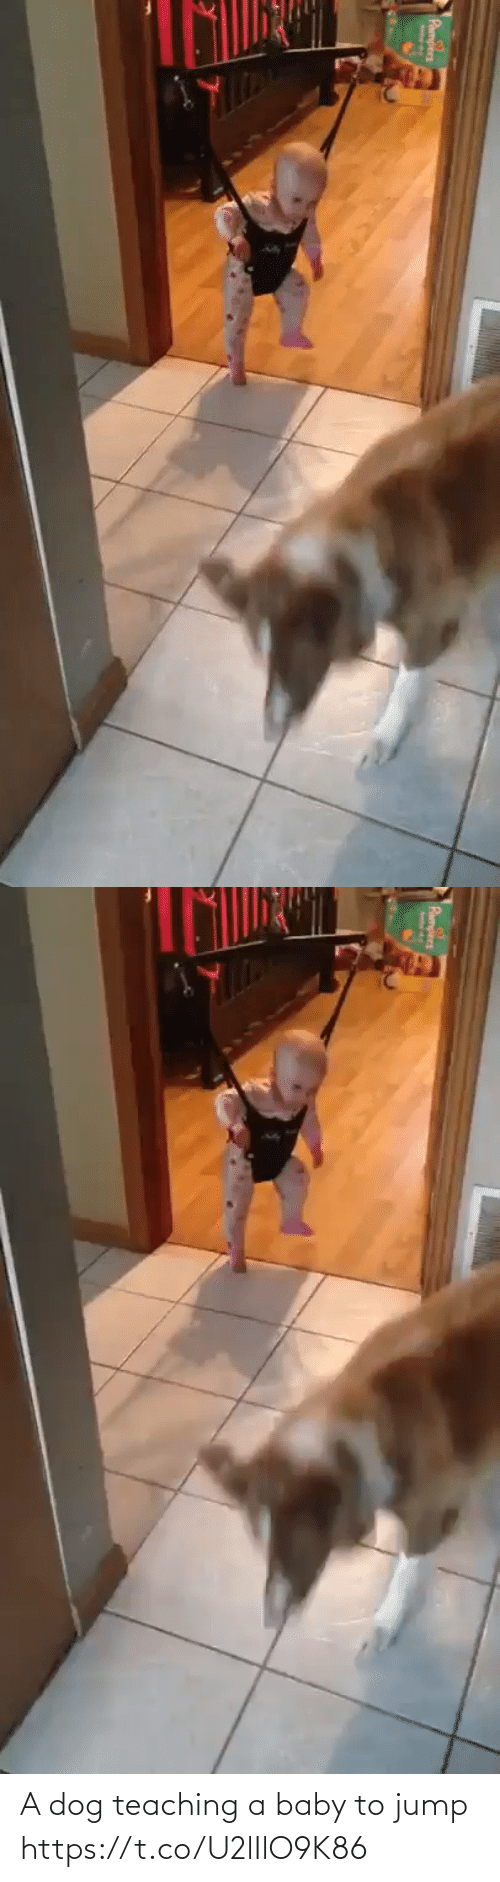 Baby: A dog teaching a baby to jump https://t.co/U2lIlO9K86